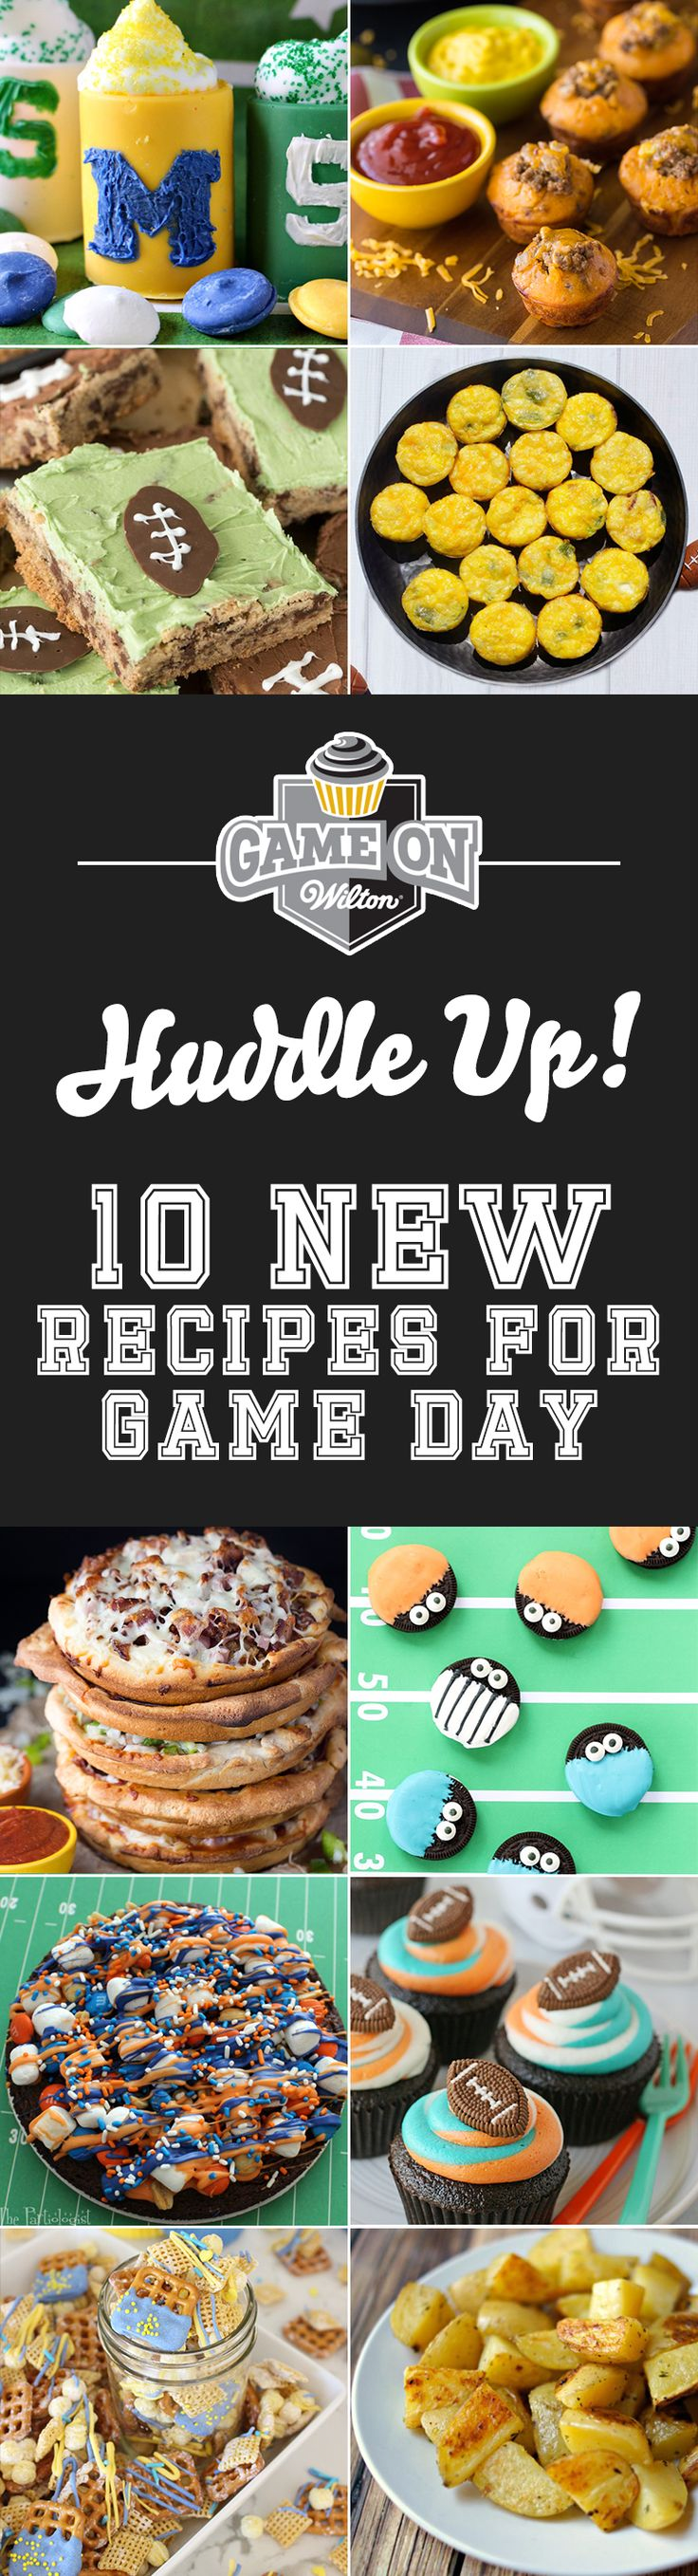 10 New Recipes for Game Day: We've teamed up with some incredible bloggers to come up with fun and tasty game day snacks. Check out these recipes that are perfect for any sports event, tailgate and football party.